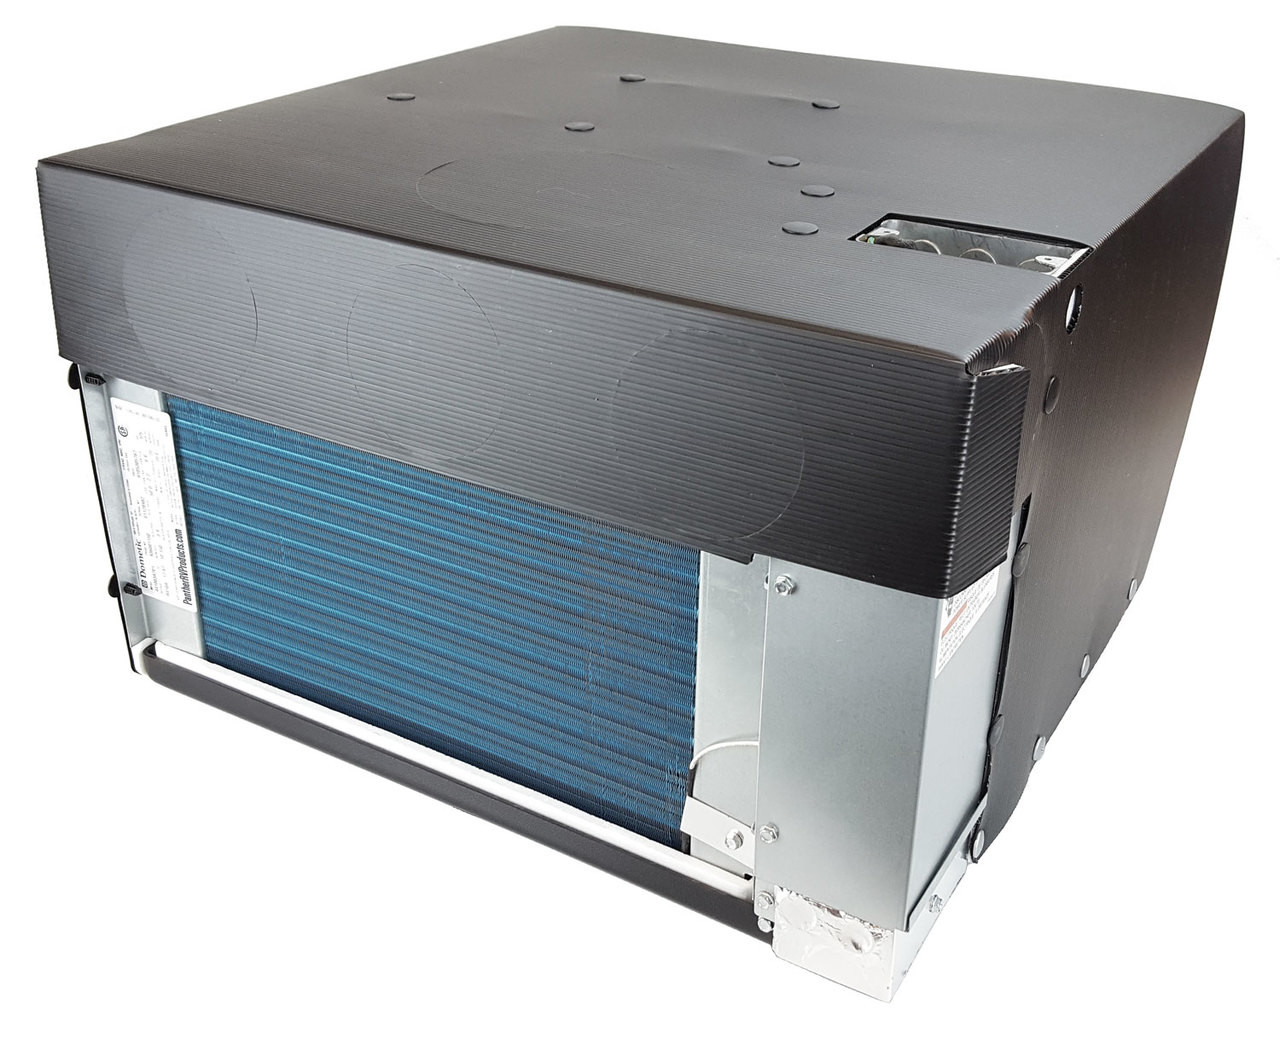 Dometic 441003AXX1 Cool Cat RV Under Bench Air Conditioner w/ Heat Pump